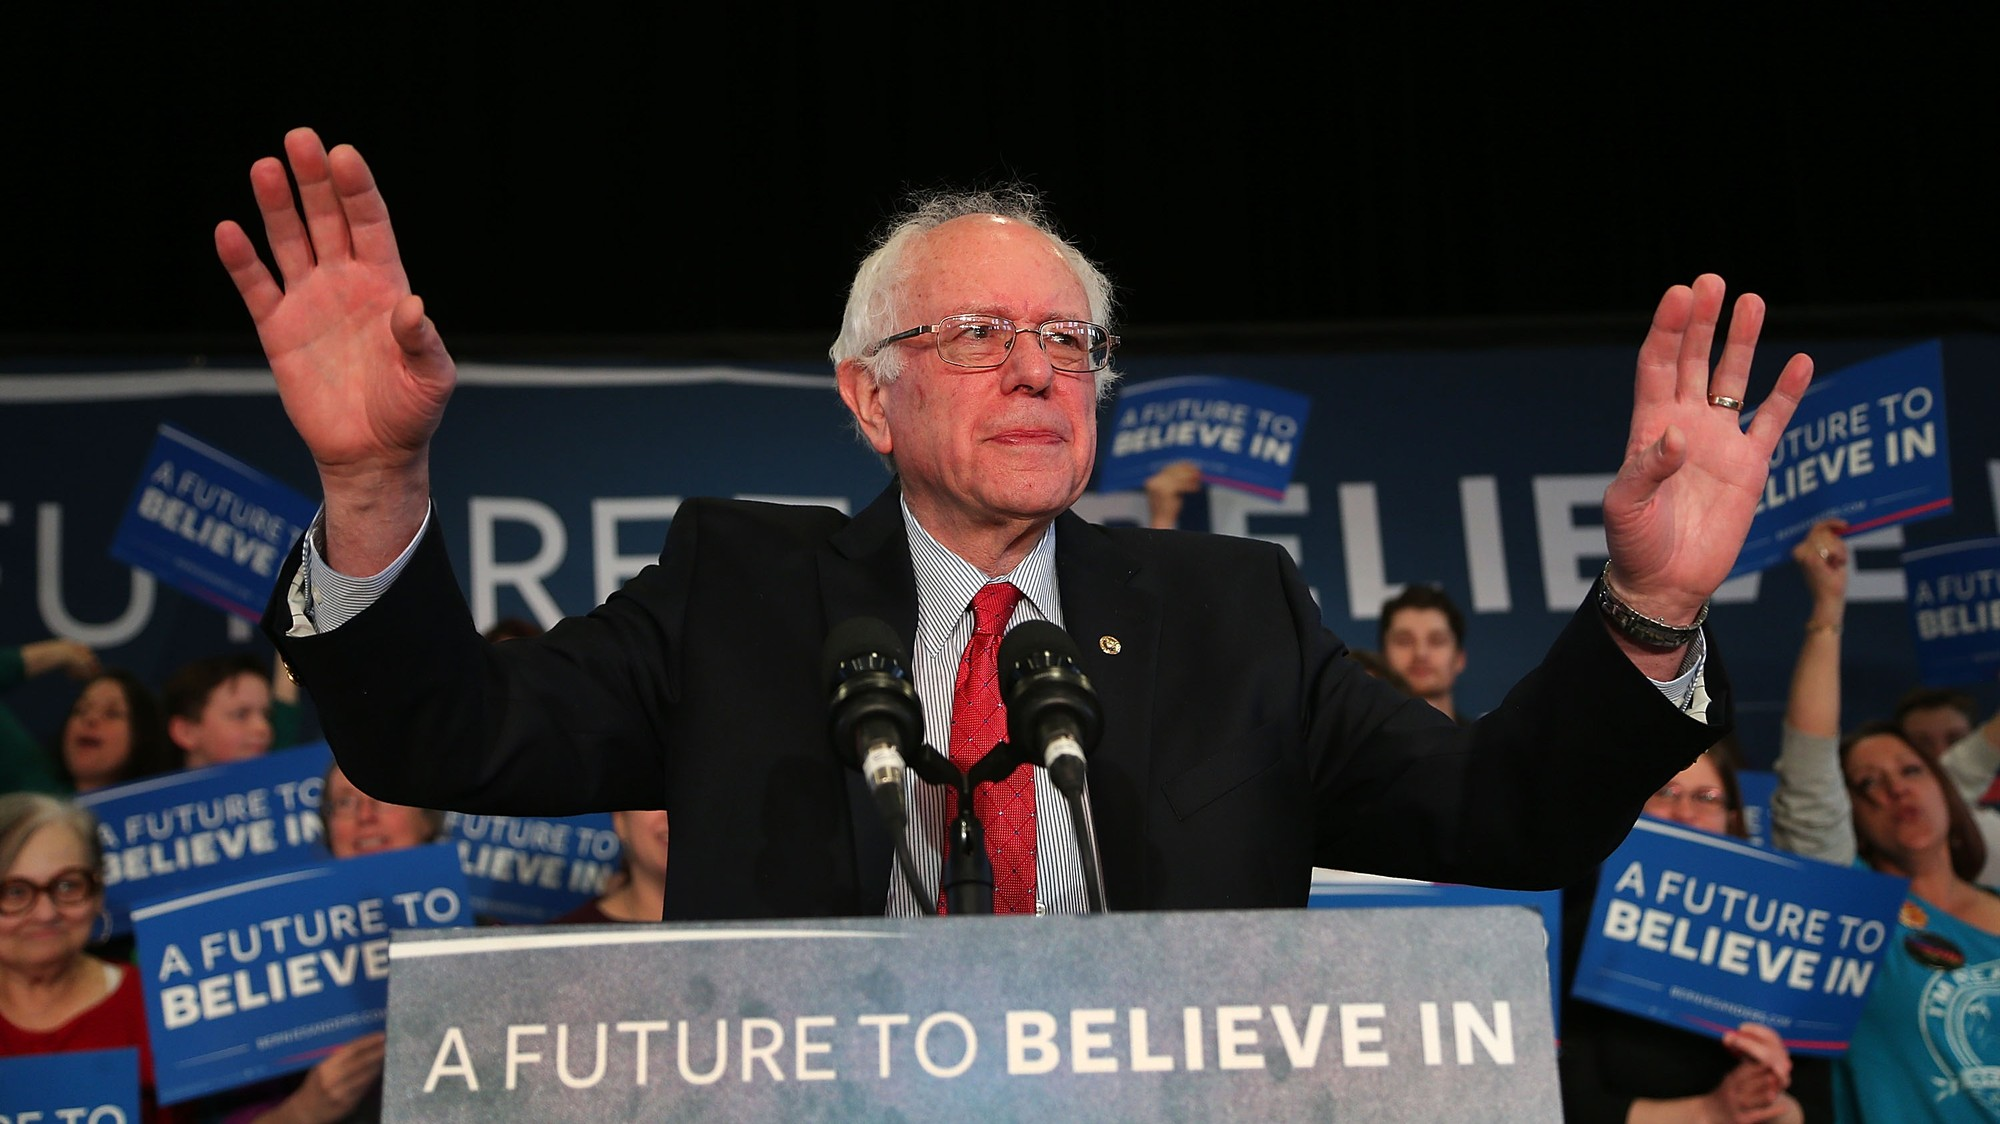 Bernie Talks Like a Jewish Man from Brooklyn and You Need to Get Over It